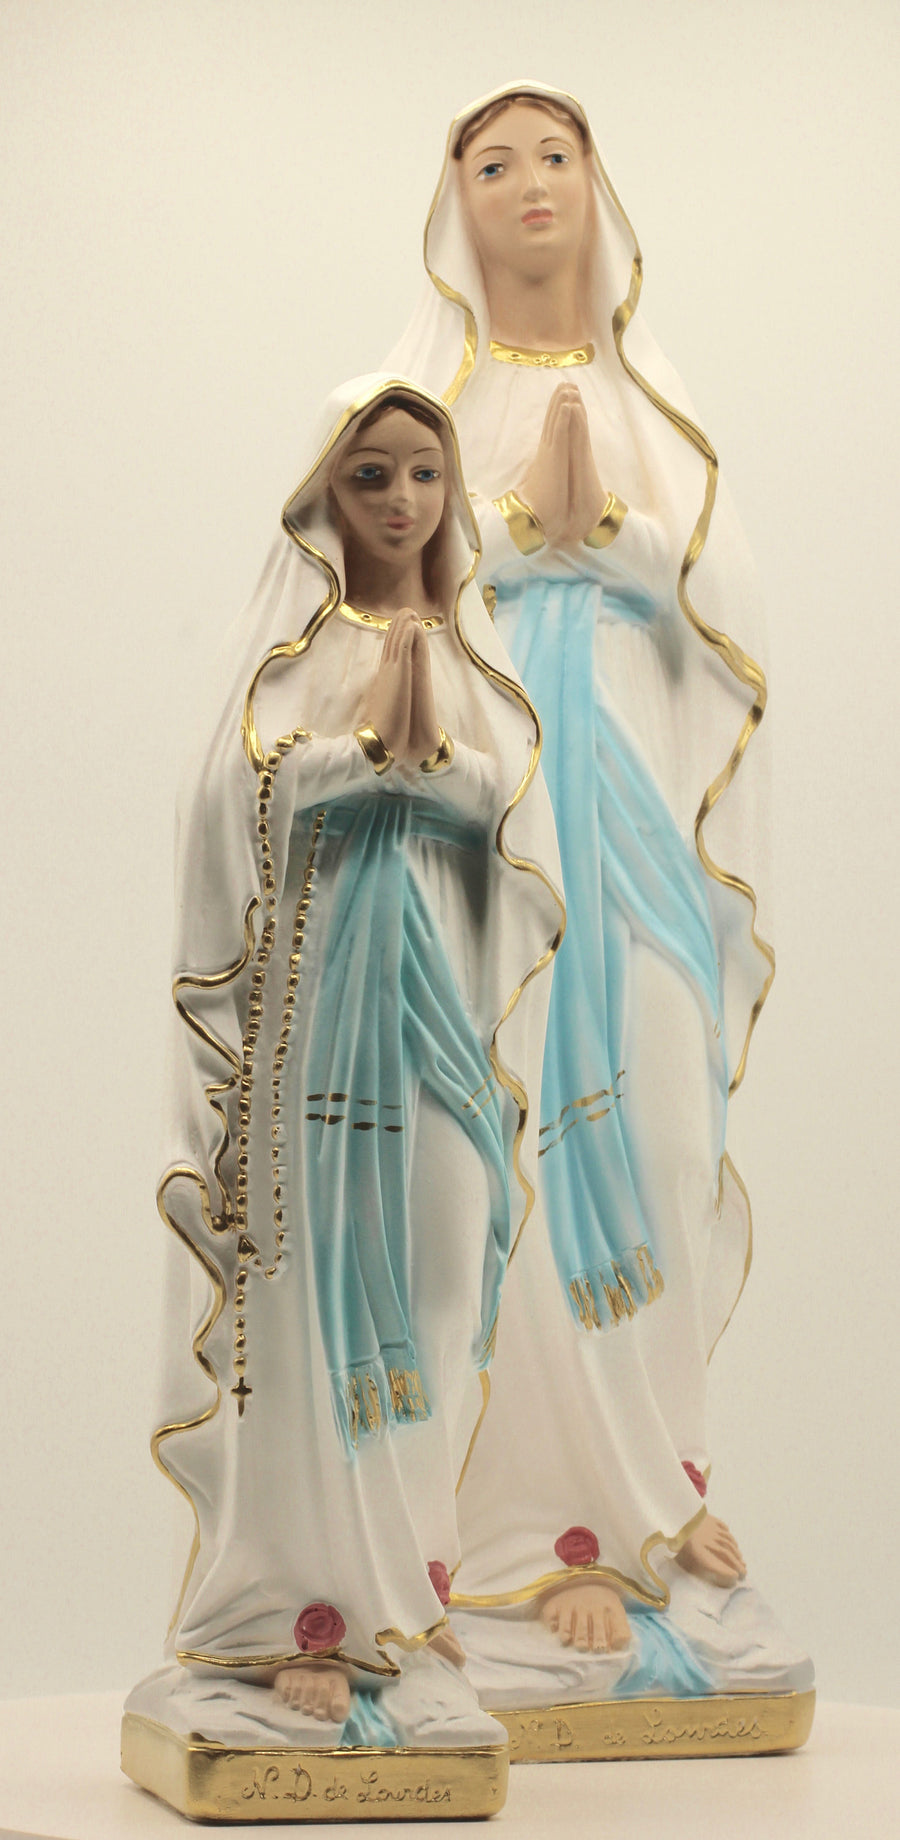 Our Lady of Lourdes / Nuestra Senora de Lourdes